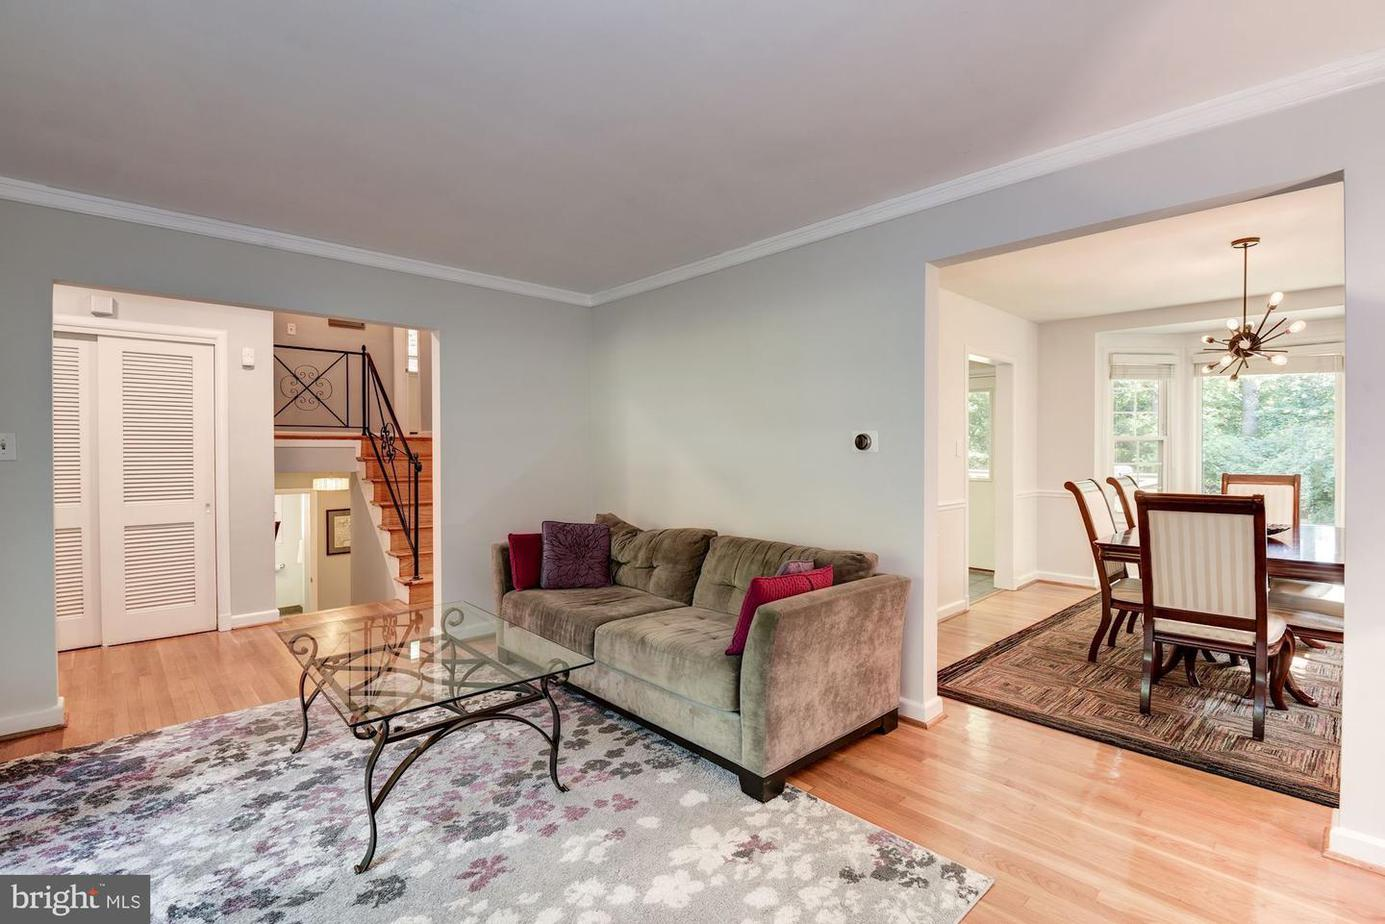 3519 Glenmoor Drive, Chevy Chase, MD 20815 Central Living areas